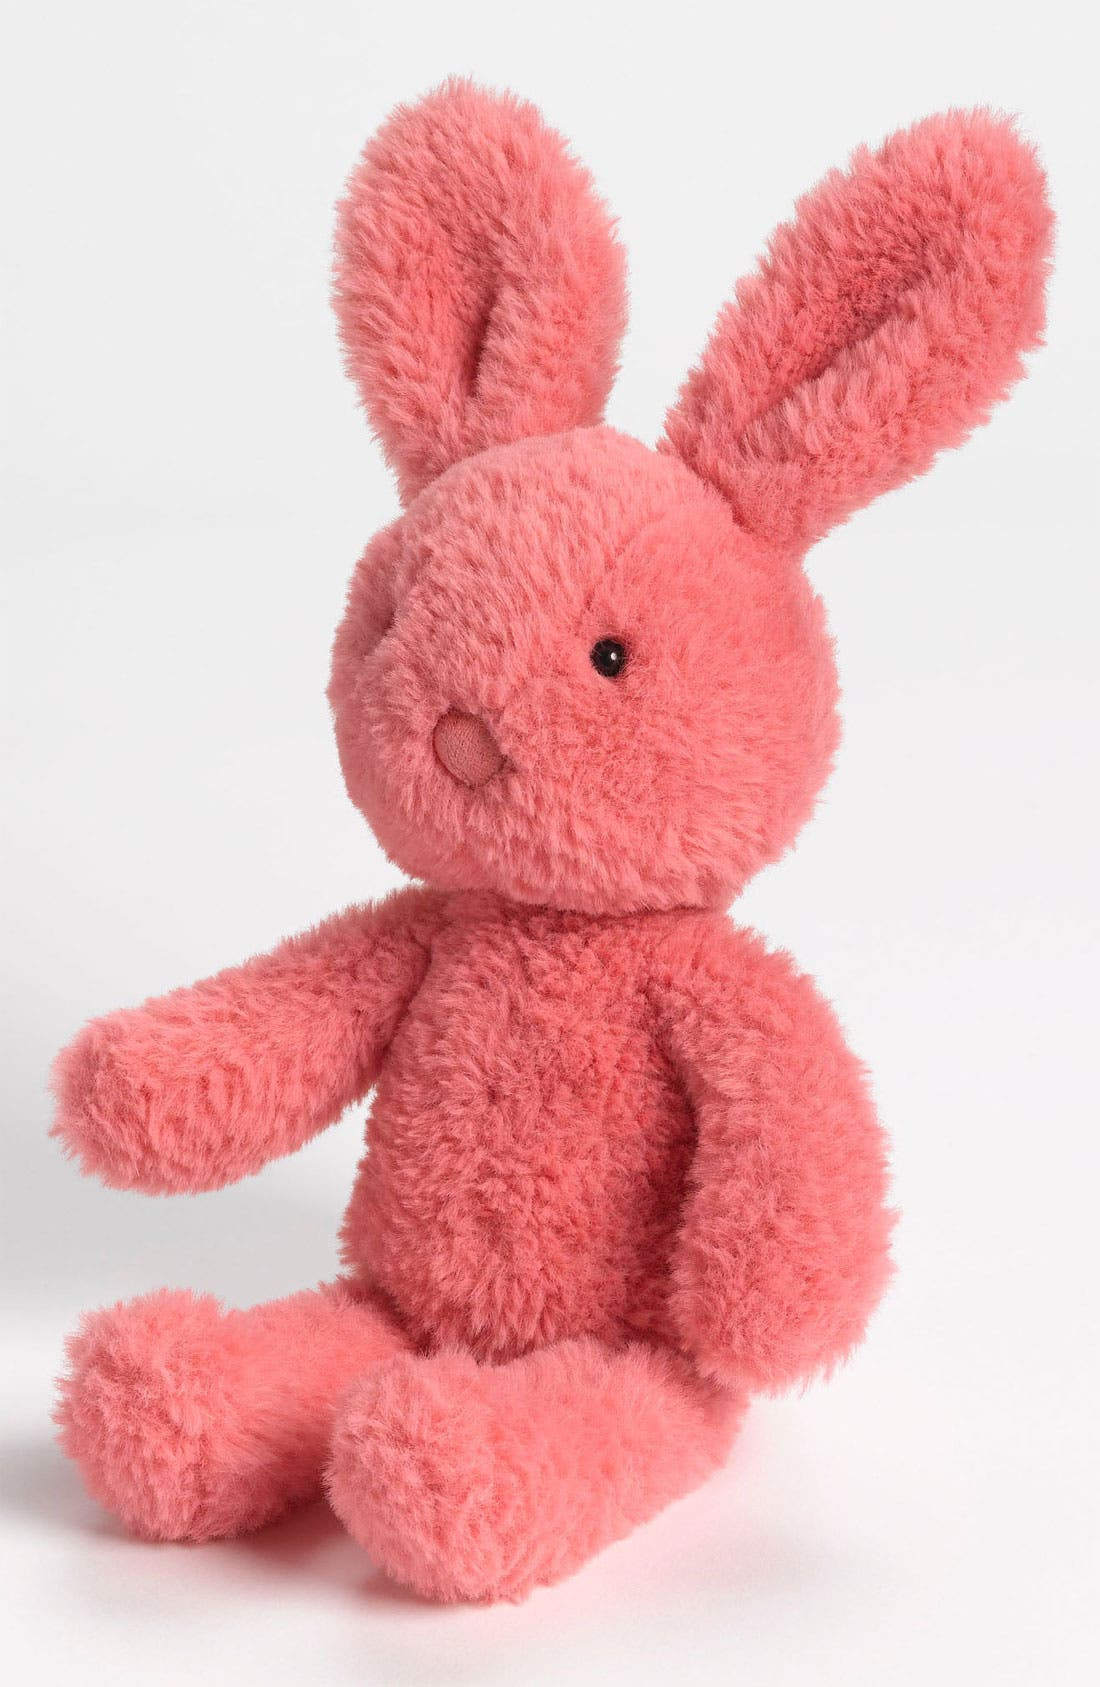 Main Image - Jellycat Bunny Stuffed Animal